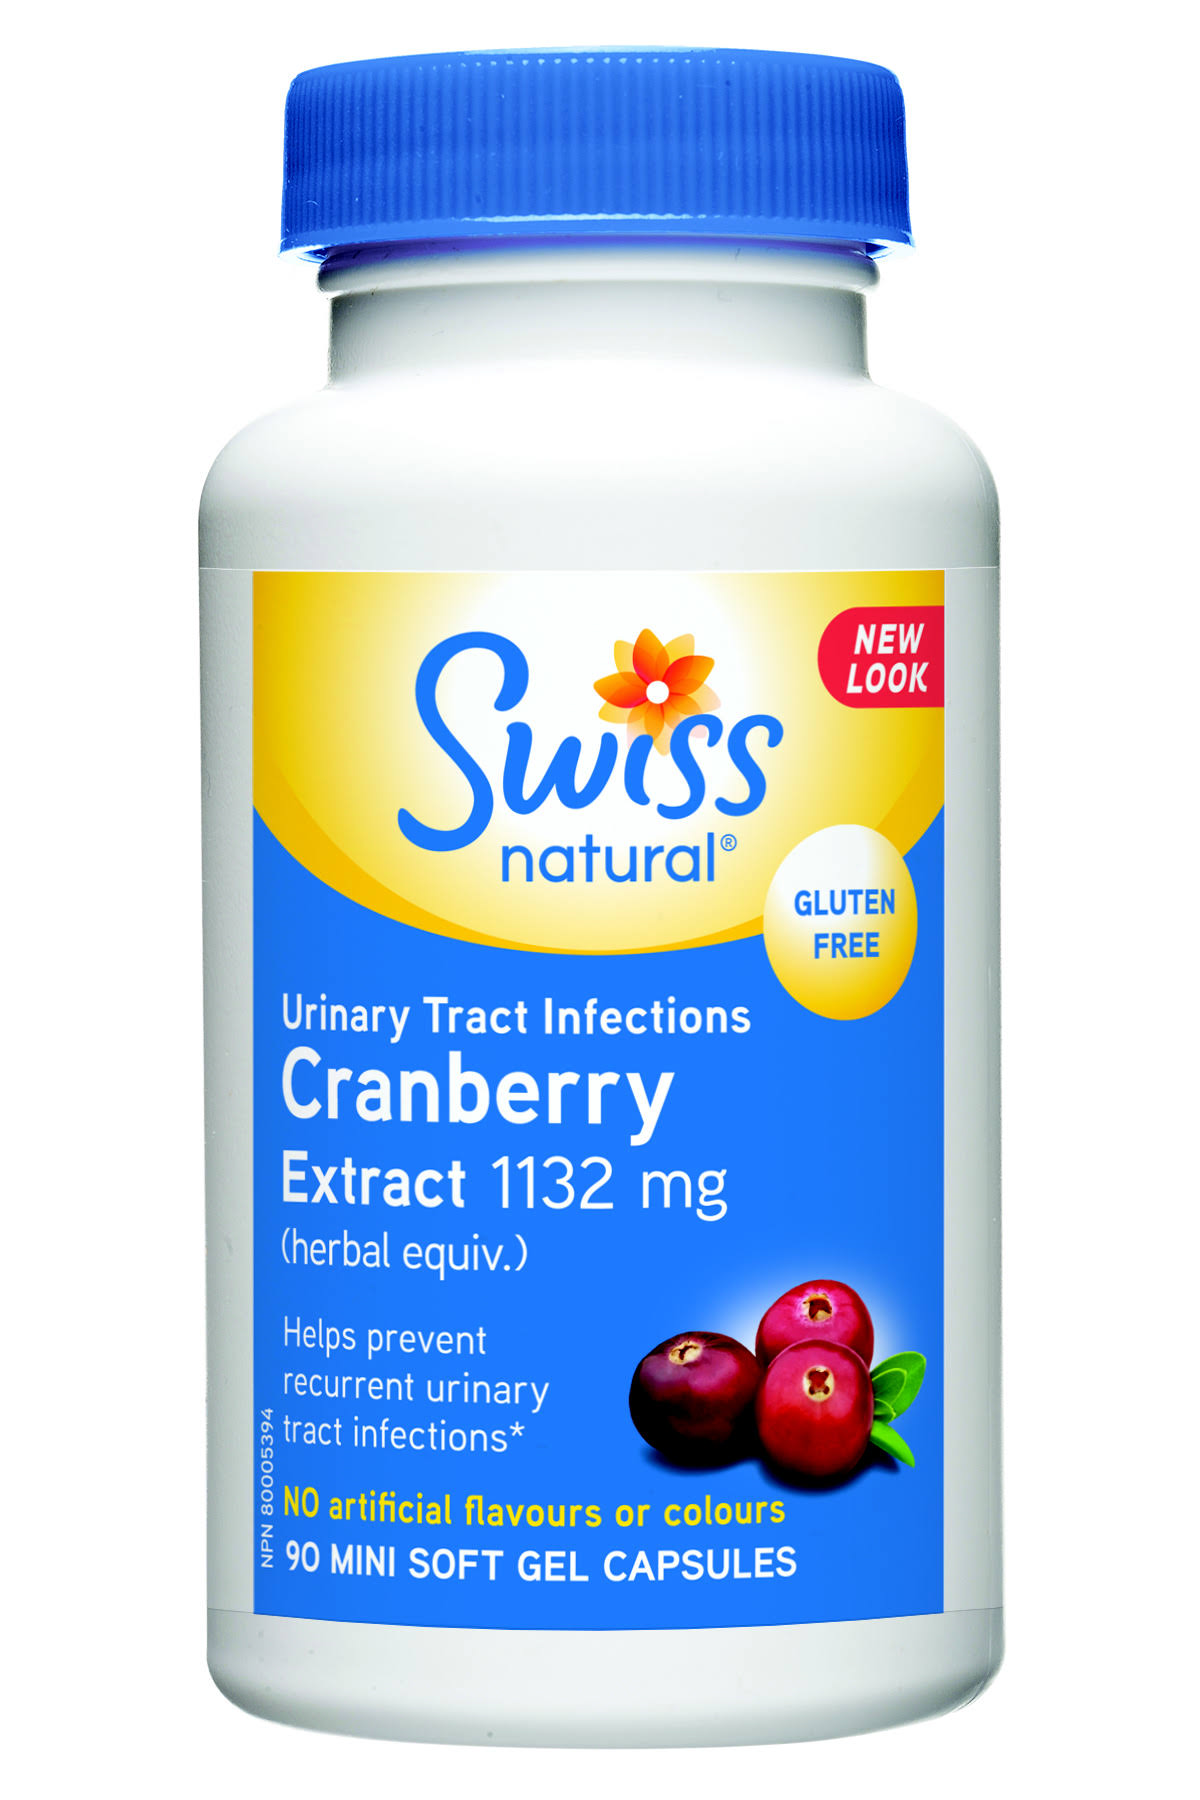 Swiss Natural Sources Cranberry Extract Supplement - 90 Mini Soft Gel Capsules